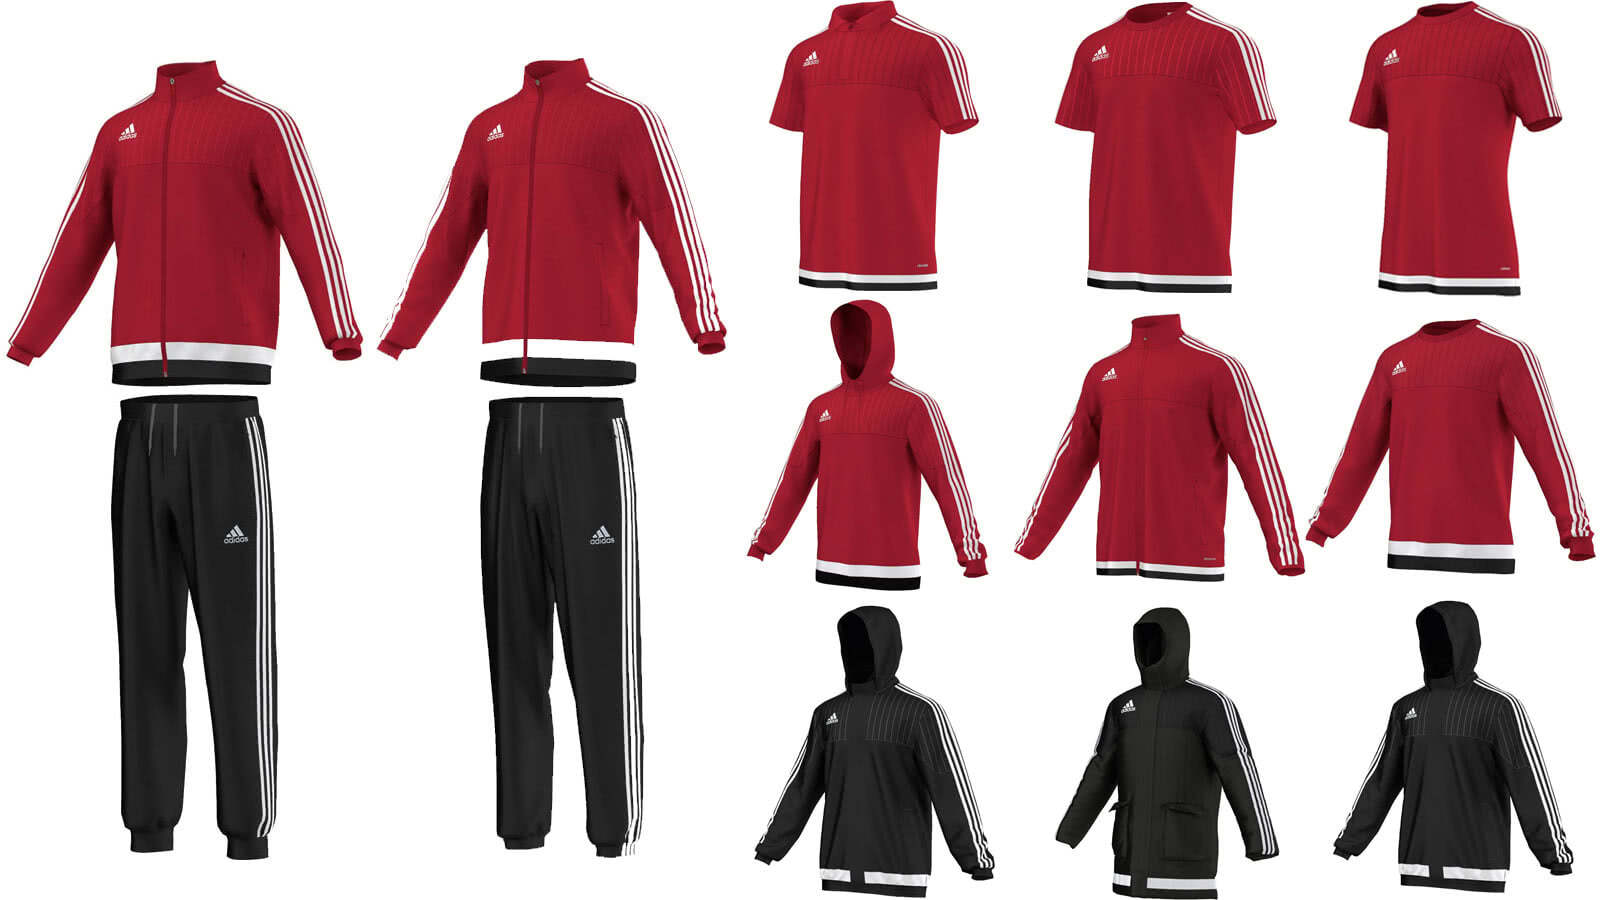 professional sale really comfortable really cheap Adidas Tiro 15 Teamsport Linie - Sportartikel und ...